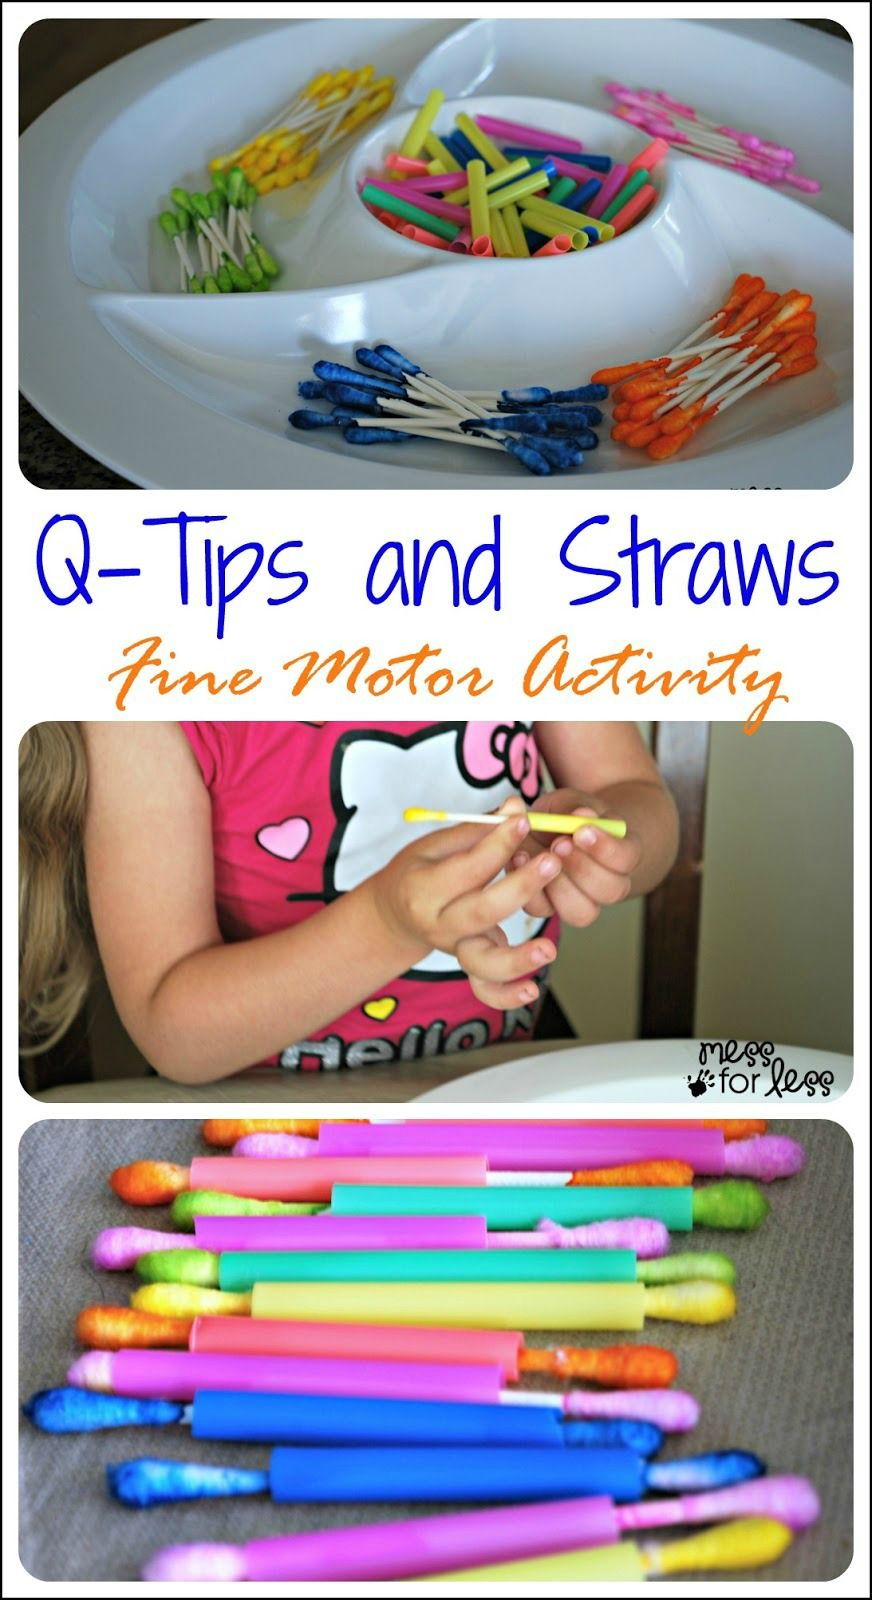 Feinmotorische wattestäbchen färben zu bunten strohhalmen sortieren und durchziehen Q-Tips and Straws Fine Motor Skills Activity - A great way to help little hands strengthen fine motor skills and work on colors at the same time.